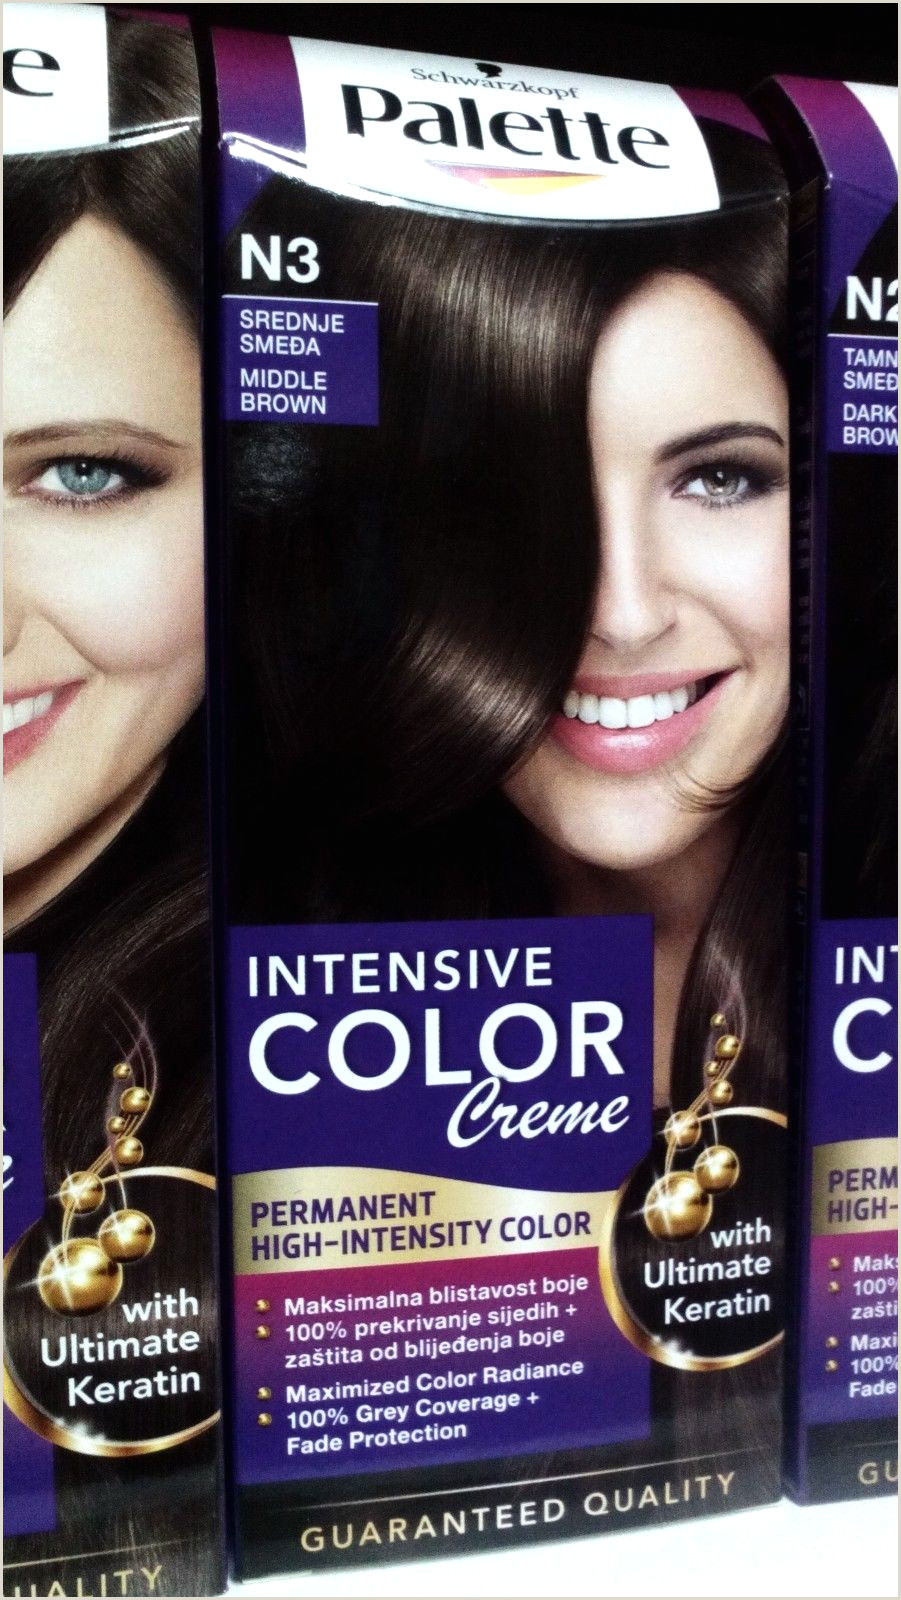 Hair Glaze Color Charts L oreal Gloss Color Unique Excellence Creme How to Apply